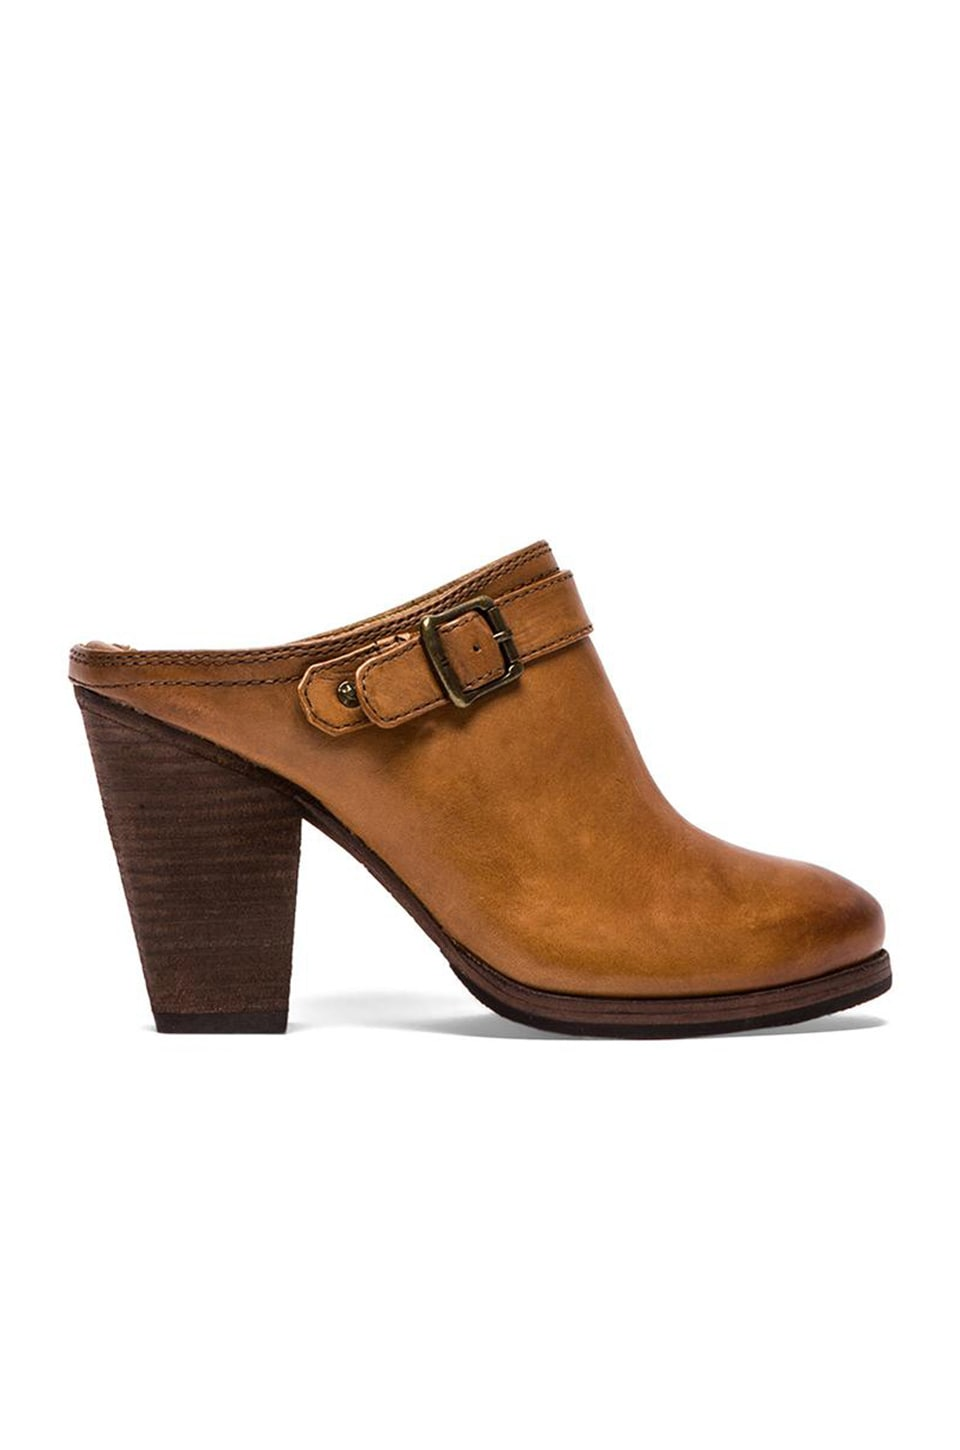 Frye Patty Sling Back in Camel